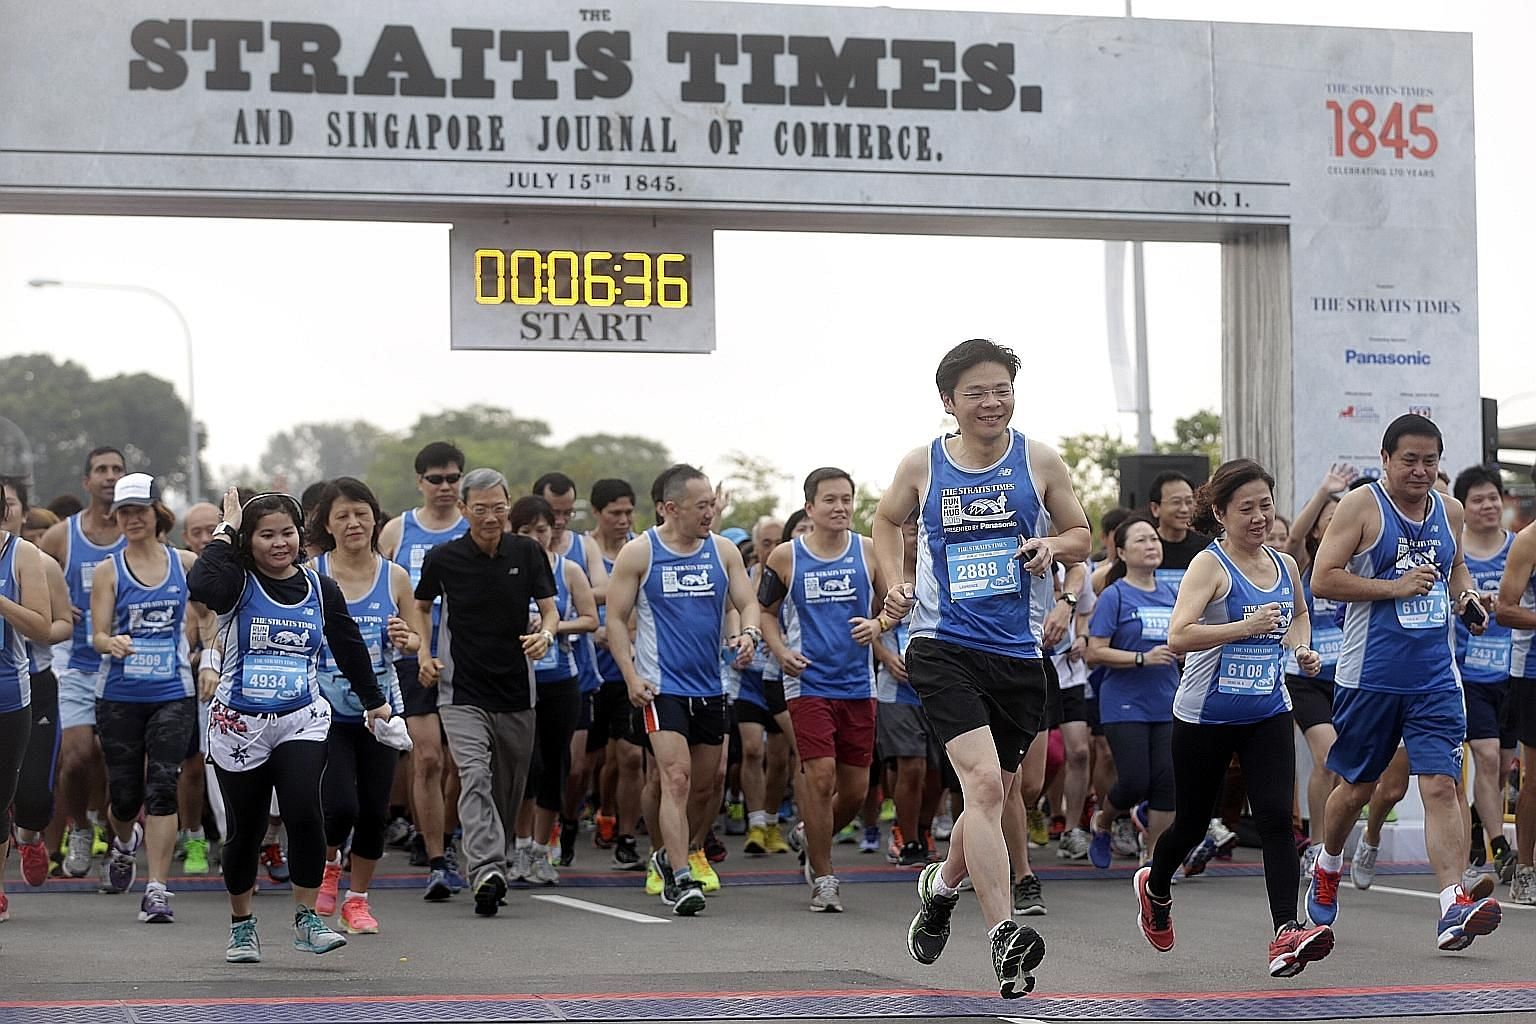 Minister for Culture, Community and Youth Lawrence Wong (foreground, third from right), the guest of honour at the event, participating in the 5km fun run with Singapore Press Holdings (SPH) chairman Lee Boon Yang (in black), Straits Times managing e